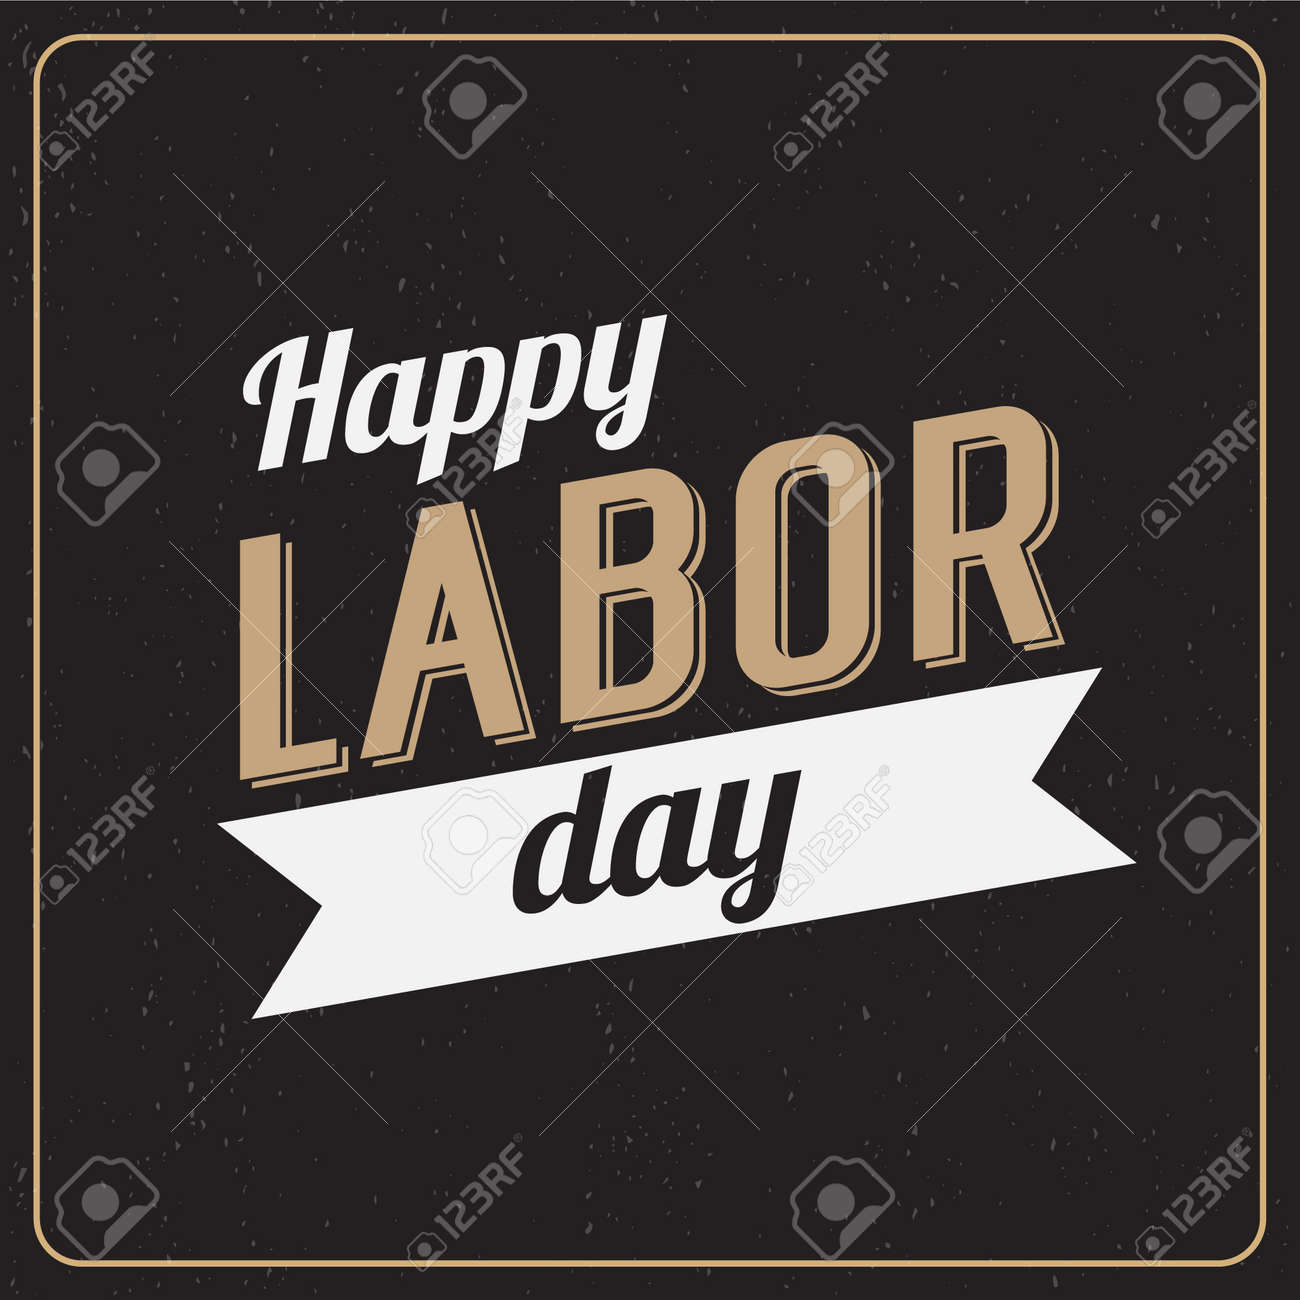 Vector Illustration Labor Day a national holiday of the United States. American Happy Labor Day design poster. - 44206791